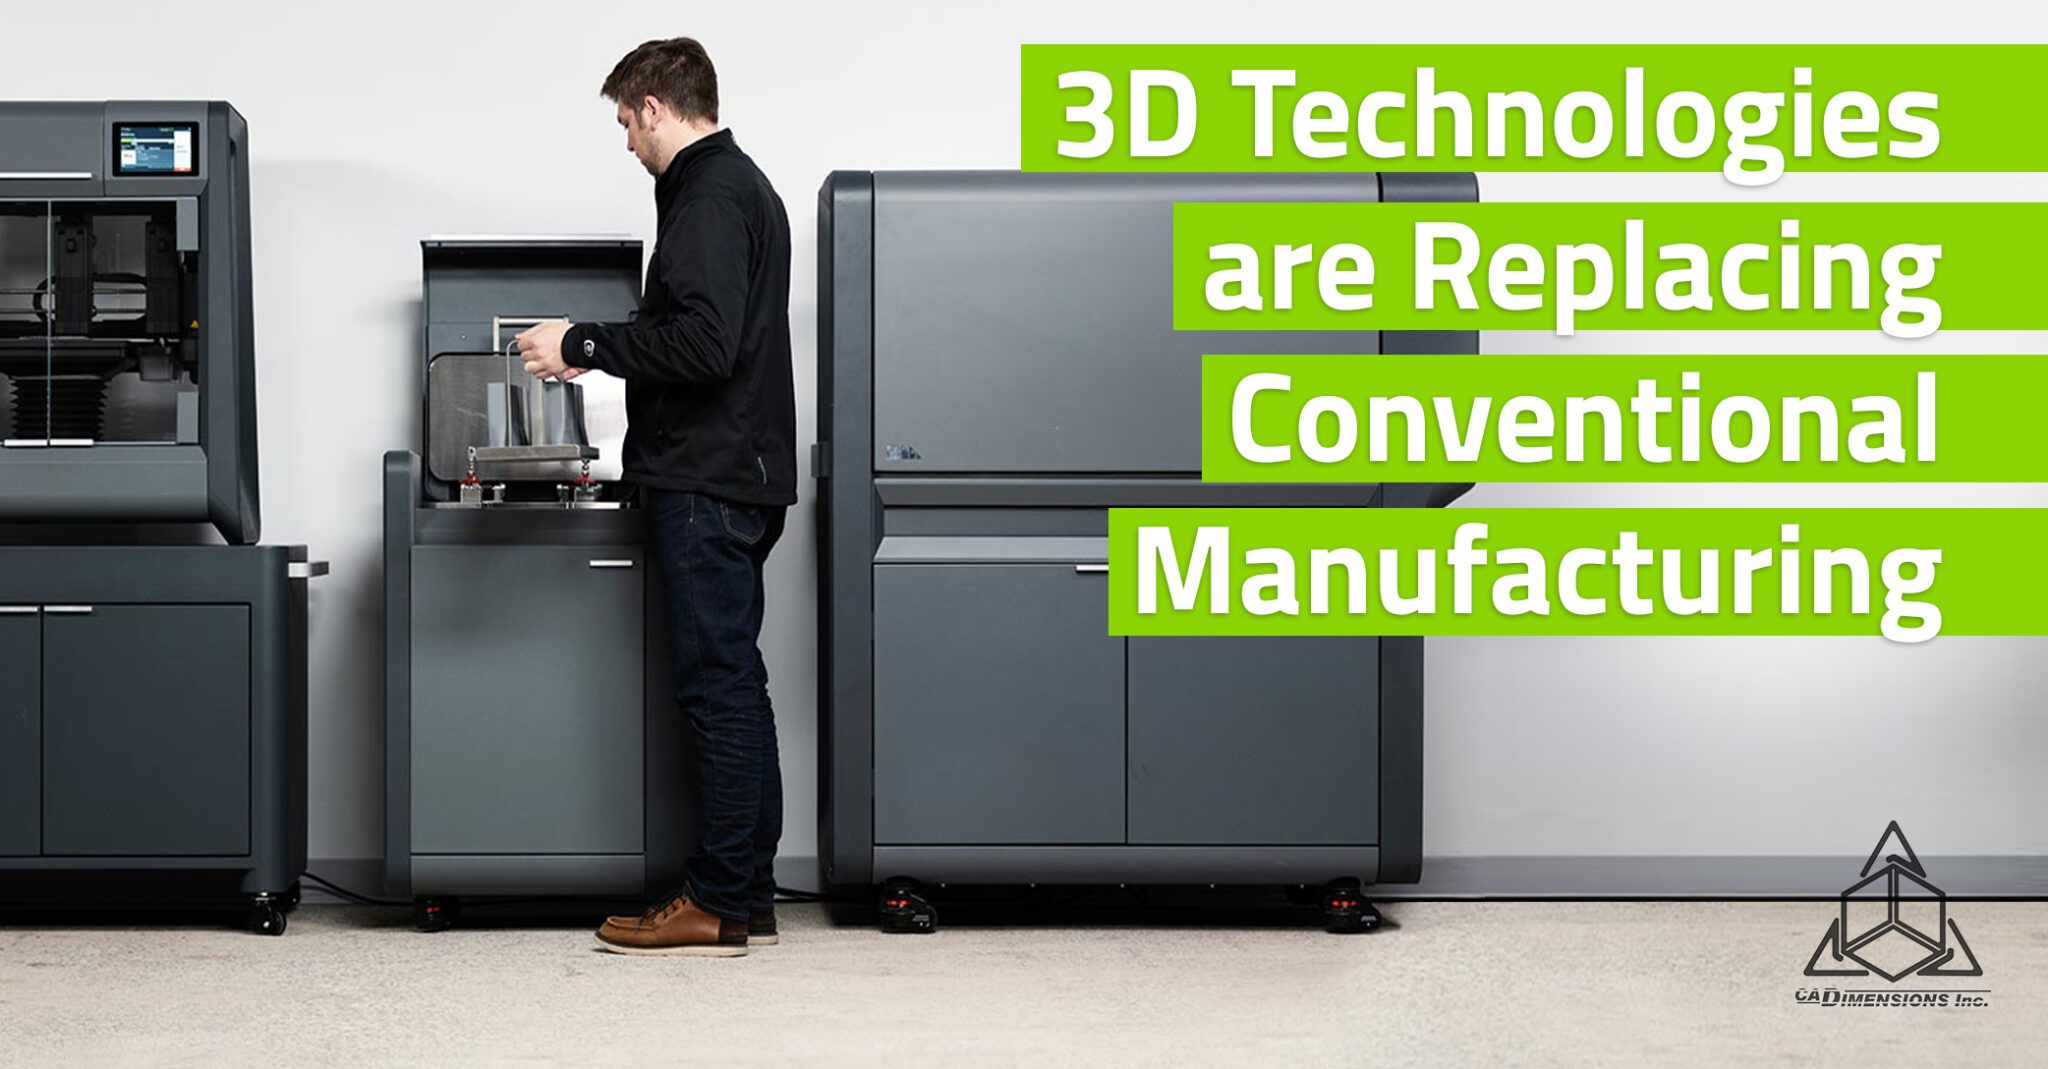 Hands-On Experience 3D Printing Crucial to Prepping Students for Design and Manufacturing - blog image